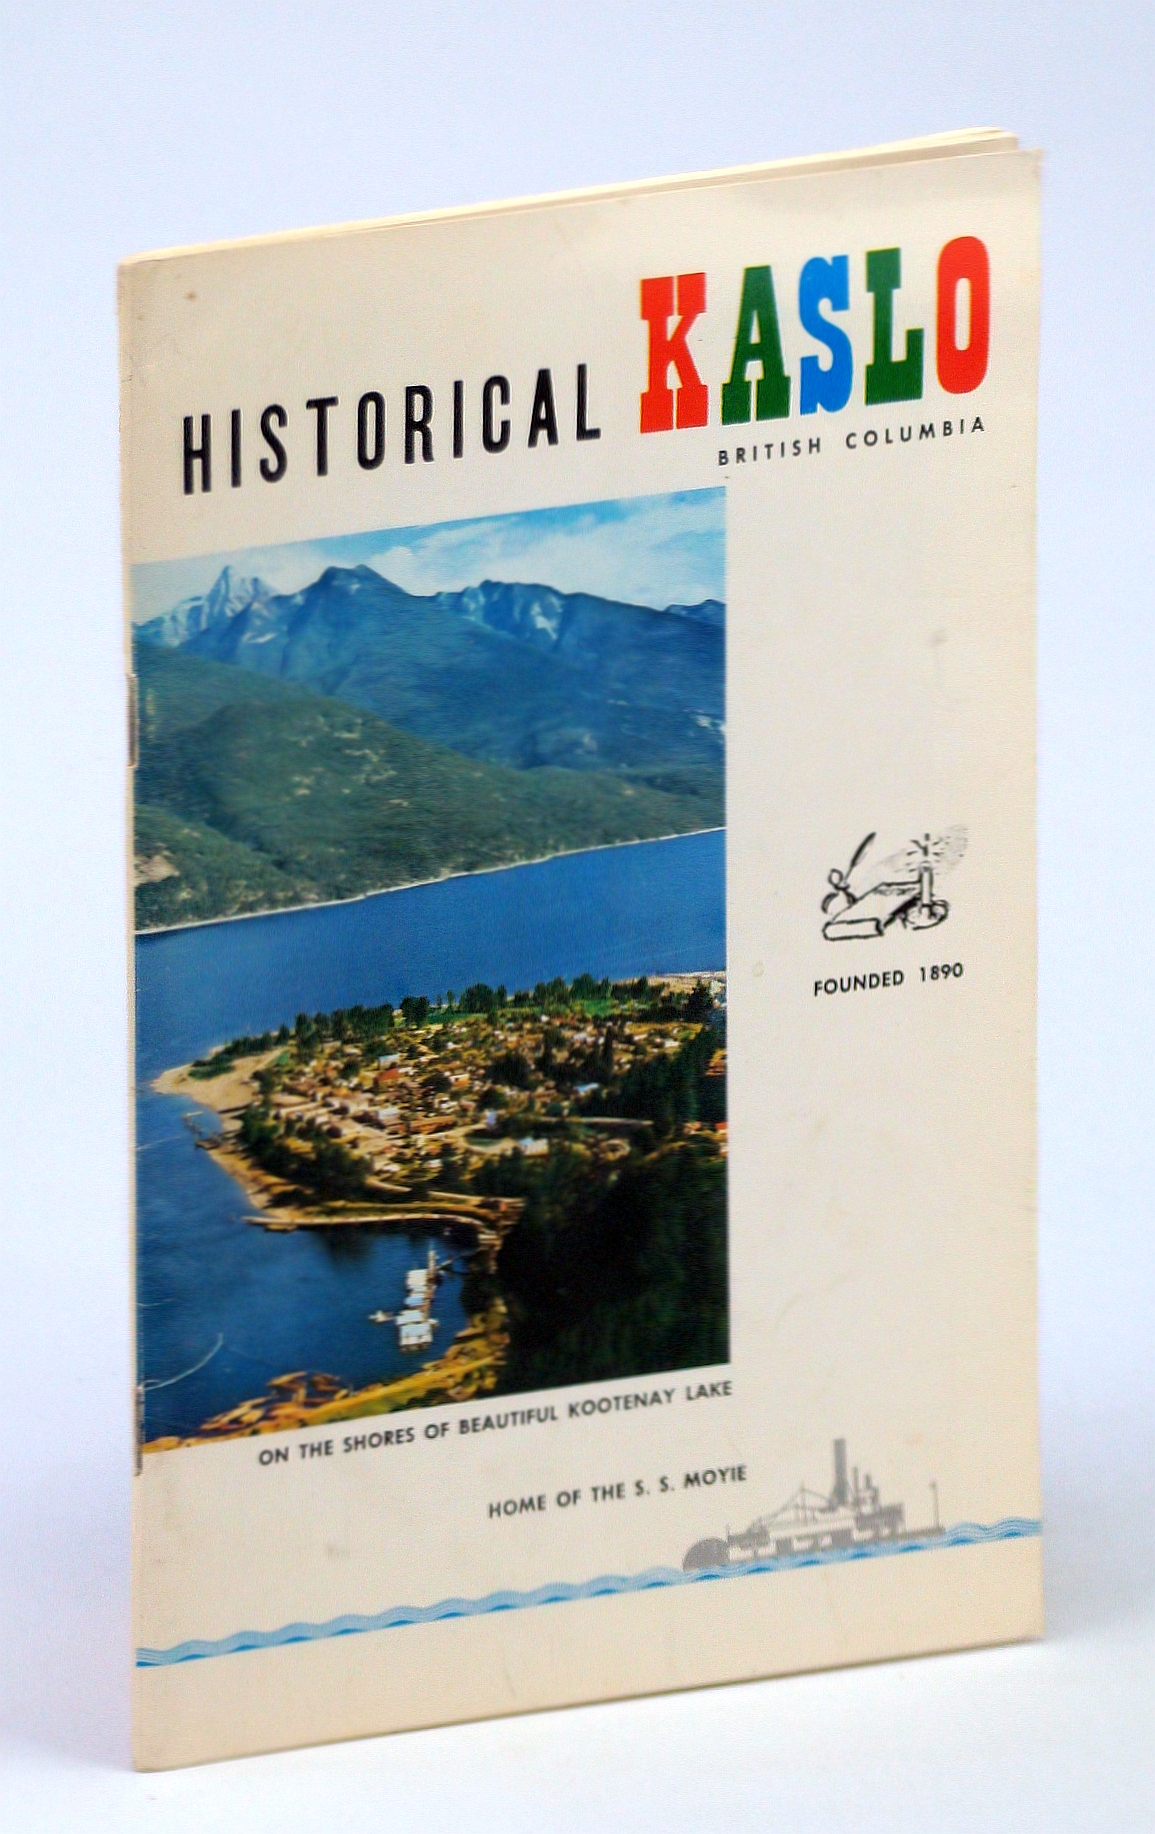 Image for Historical Kaslo, British Columbia